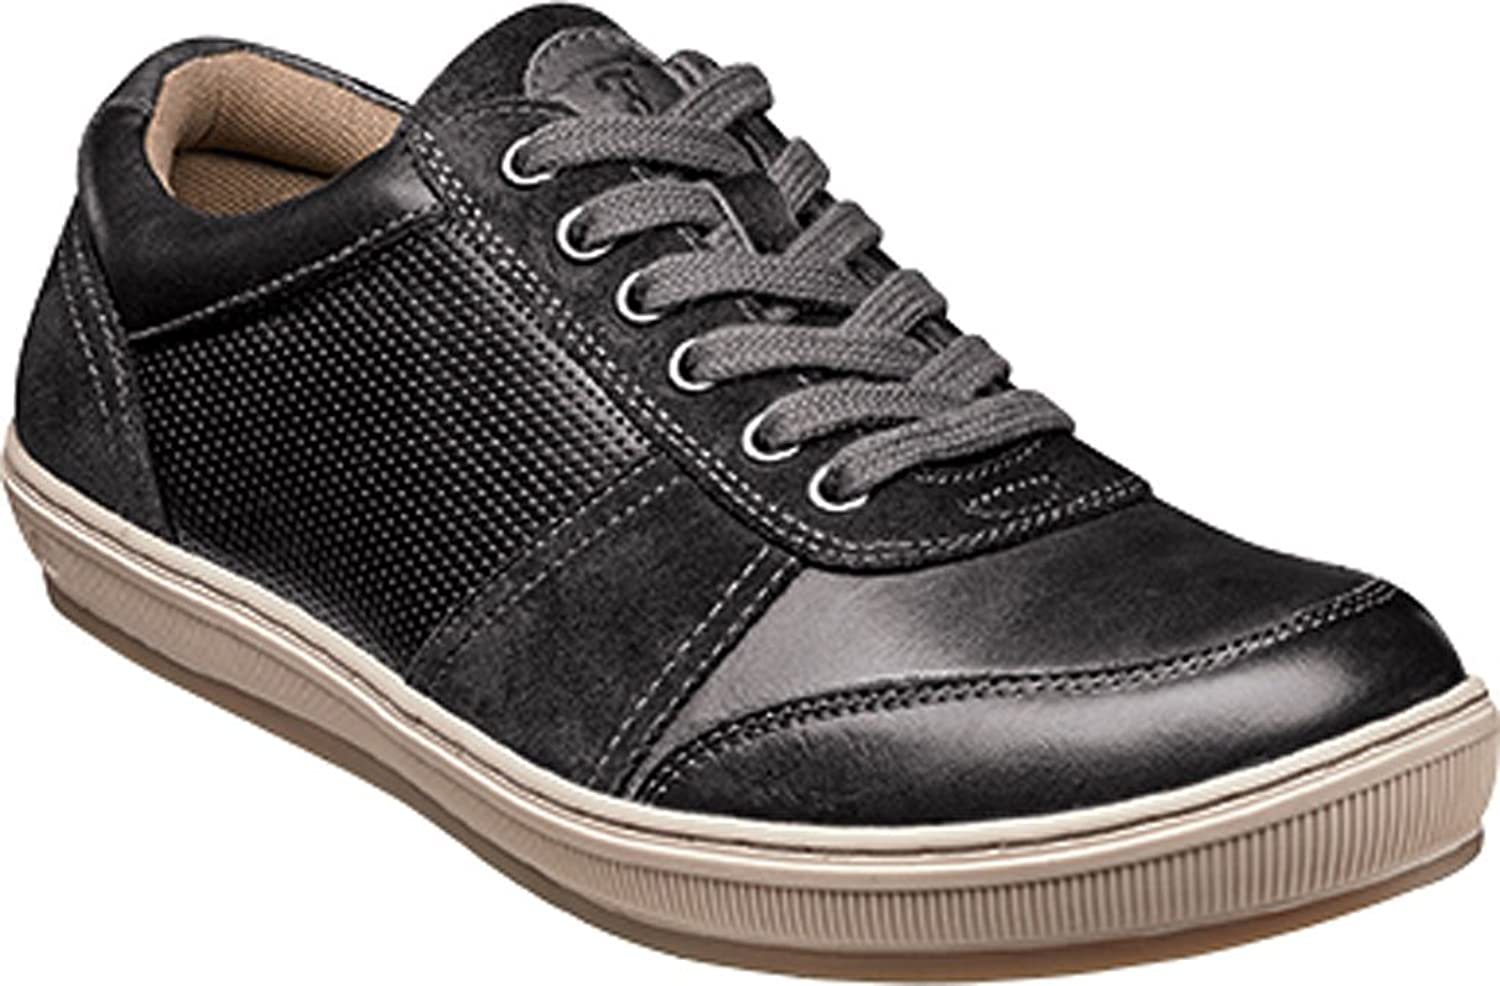 Florsheim Mens Venue Moc Toe Lace-Up